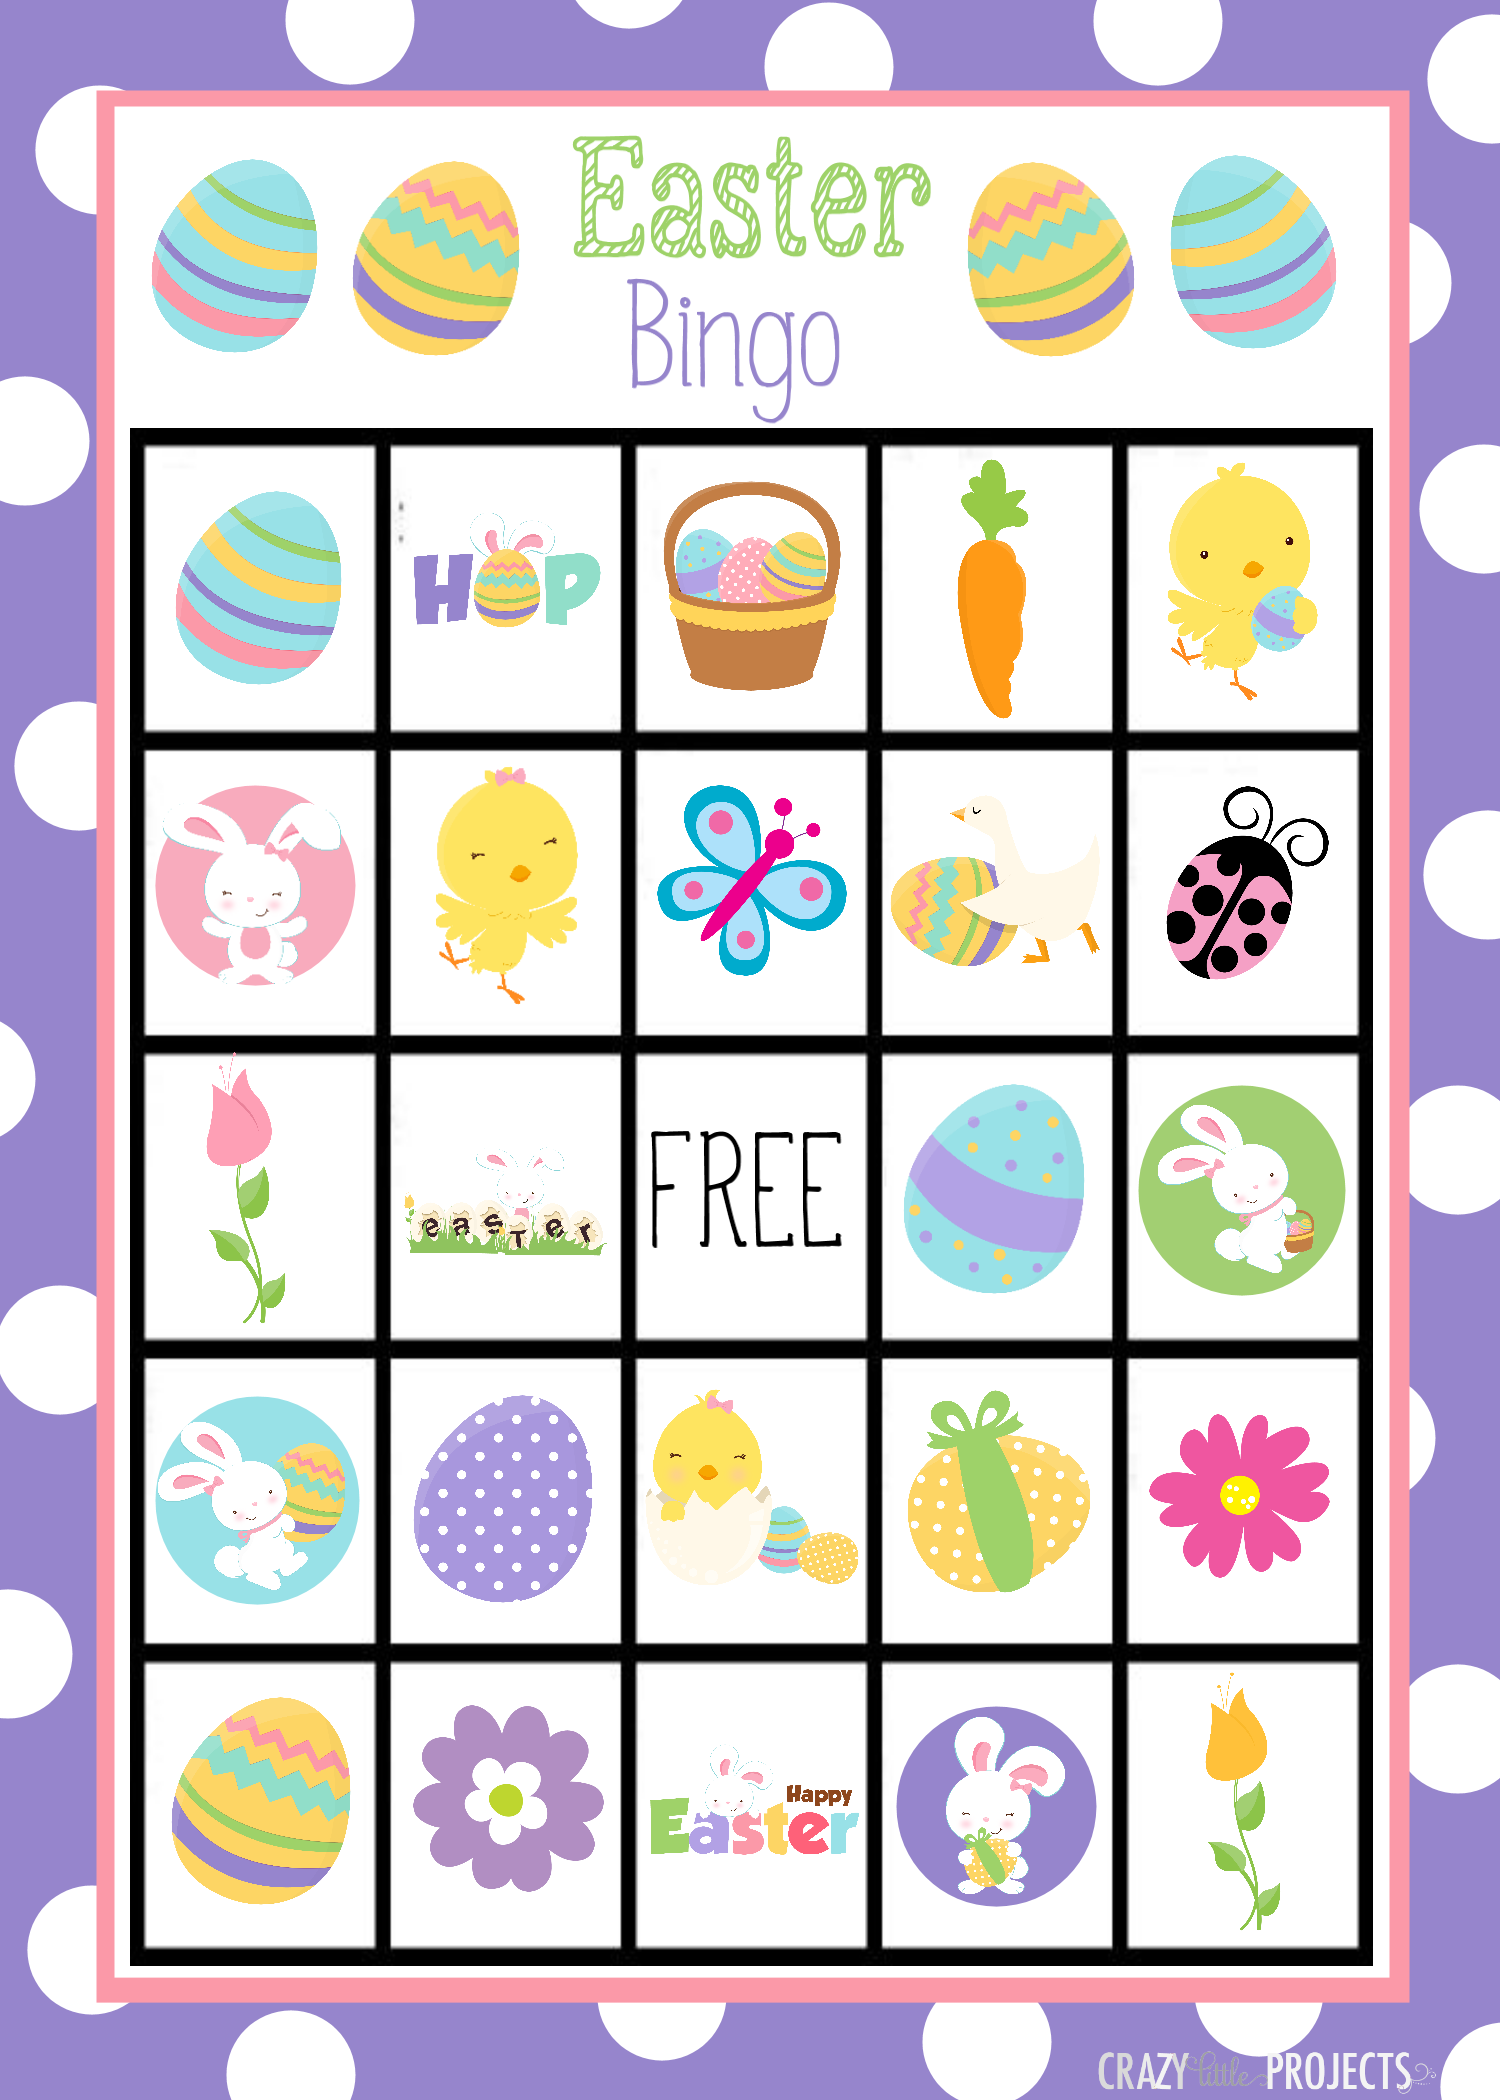 5 Images of Religious Easter Bingo Printables